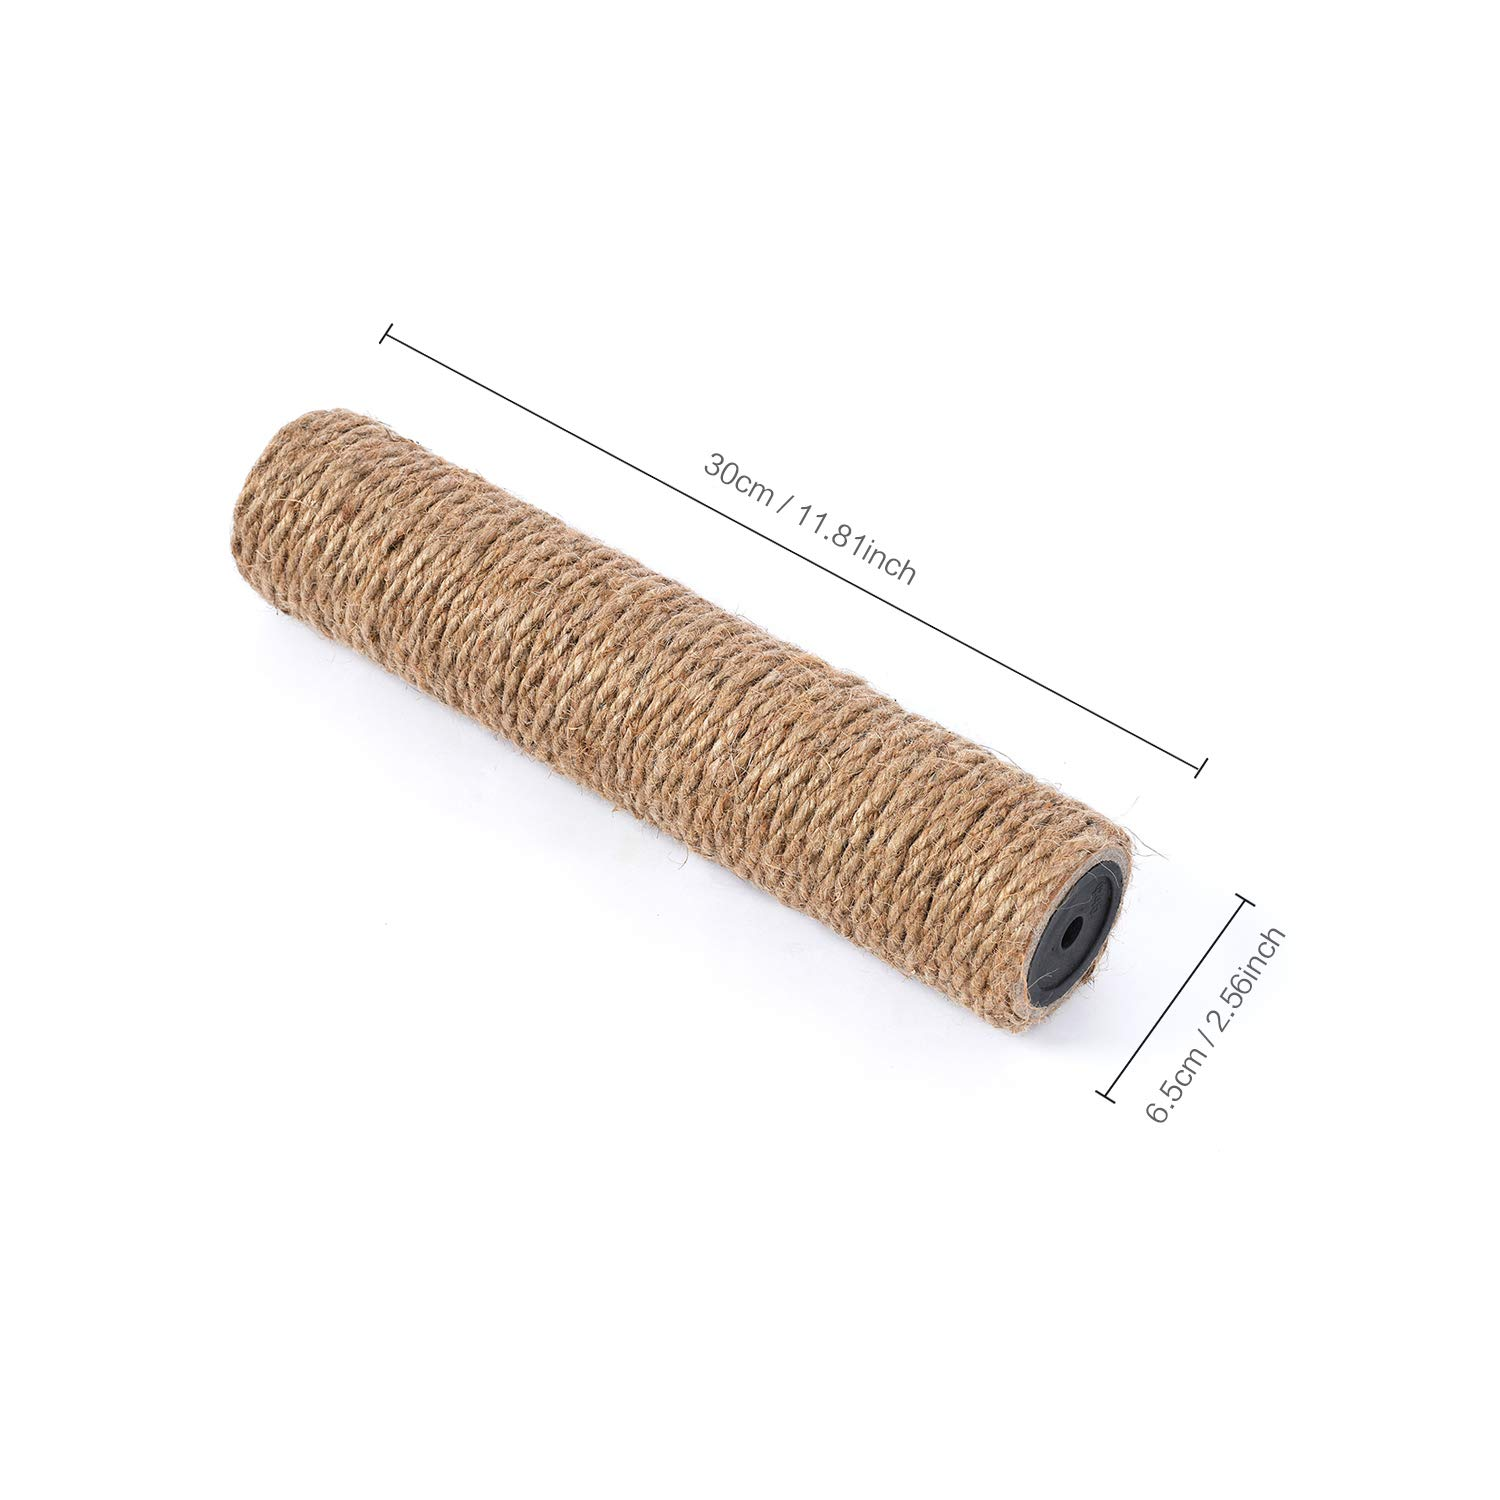 Conysan Wooden Cat Scratching Post Play Tower Double-layered Cat Tree With takraw balls Activity Centre for Cats Kittens